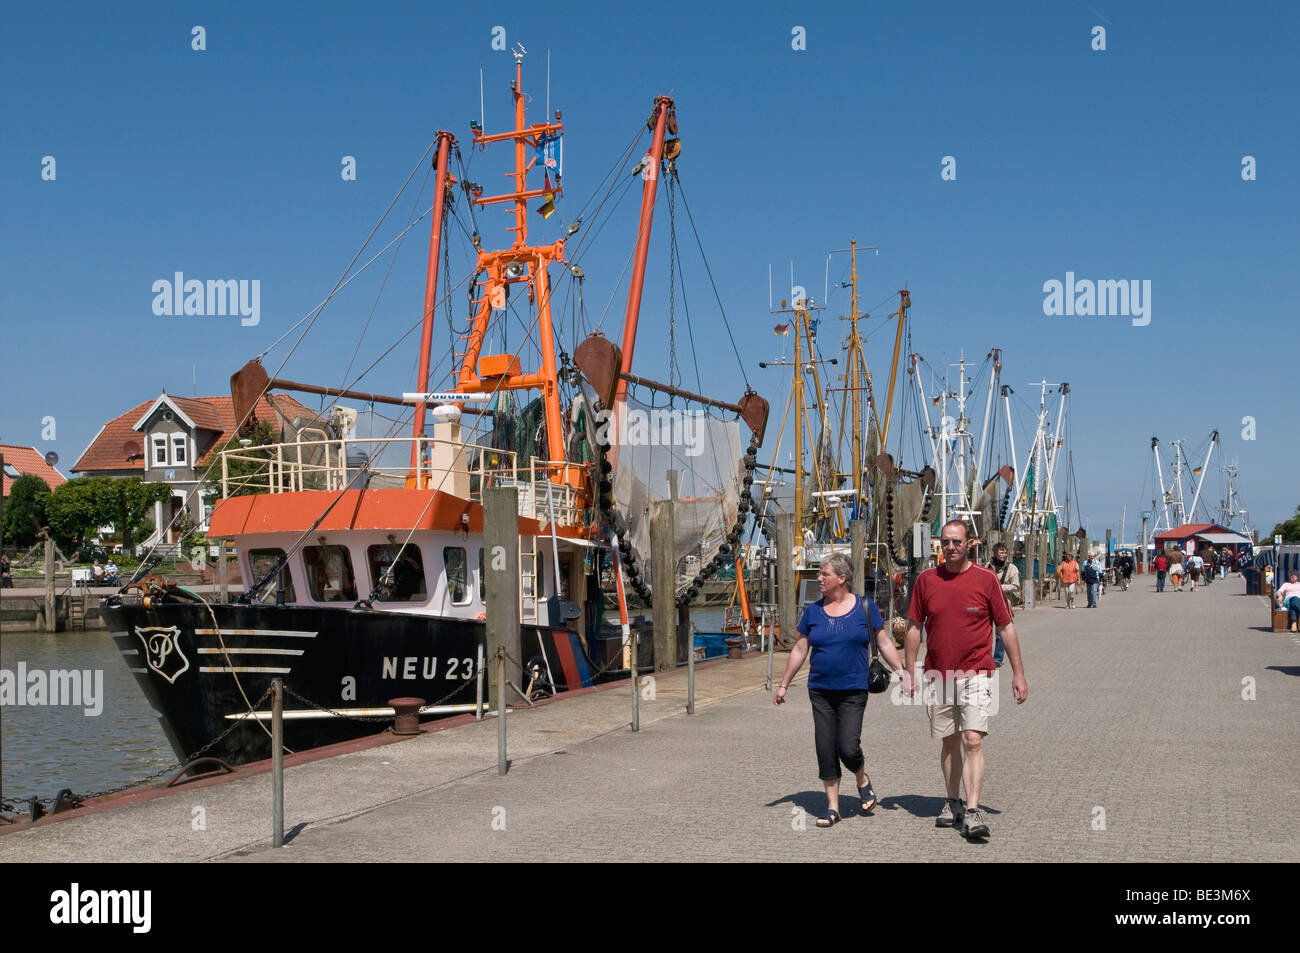 Tourists next to the fleet of shrimp boats in the harbor Neuharlingersiel, North Sea, East Frisia, Lower Saxony, - Stock Image